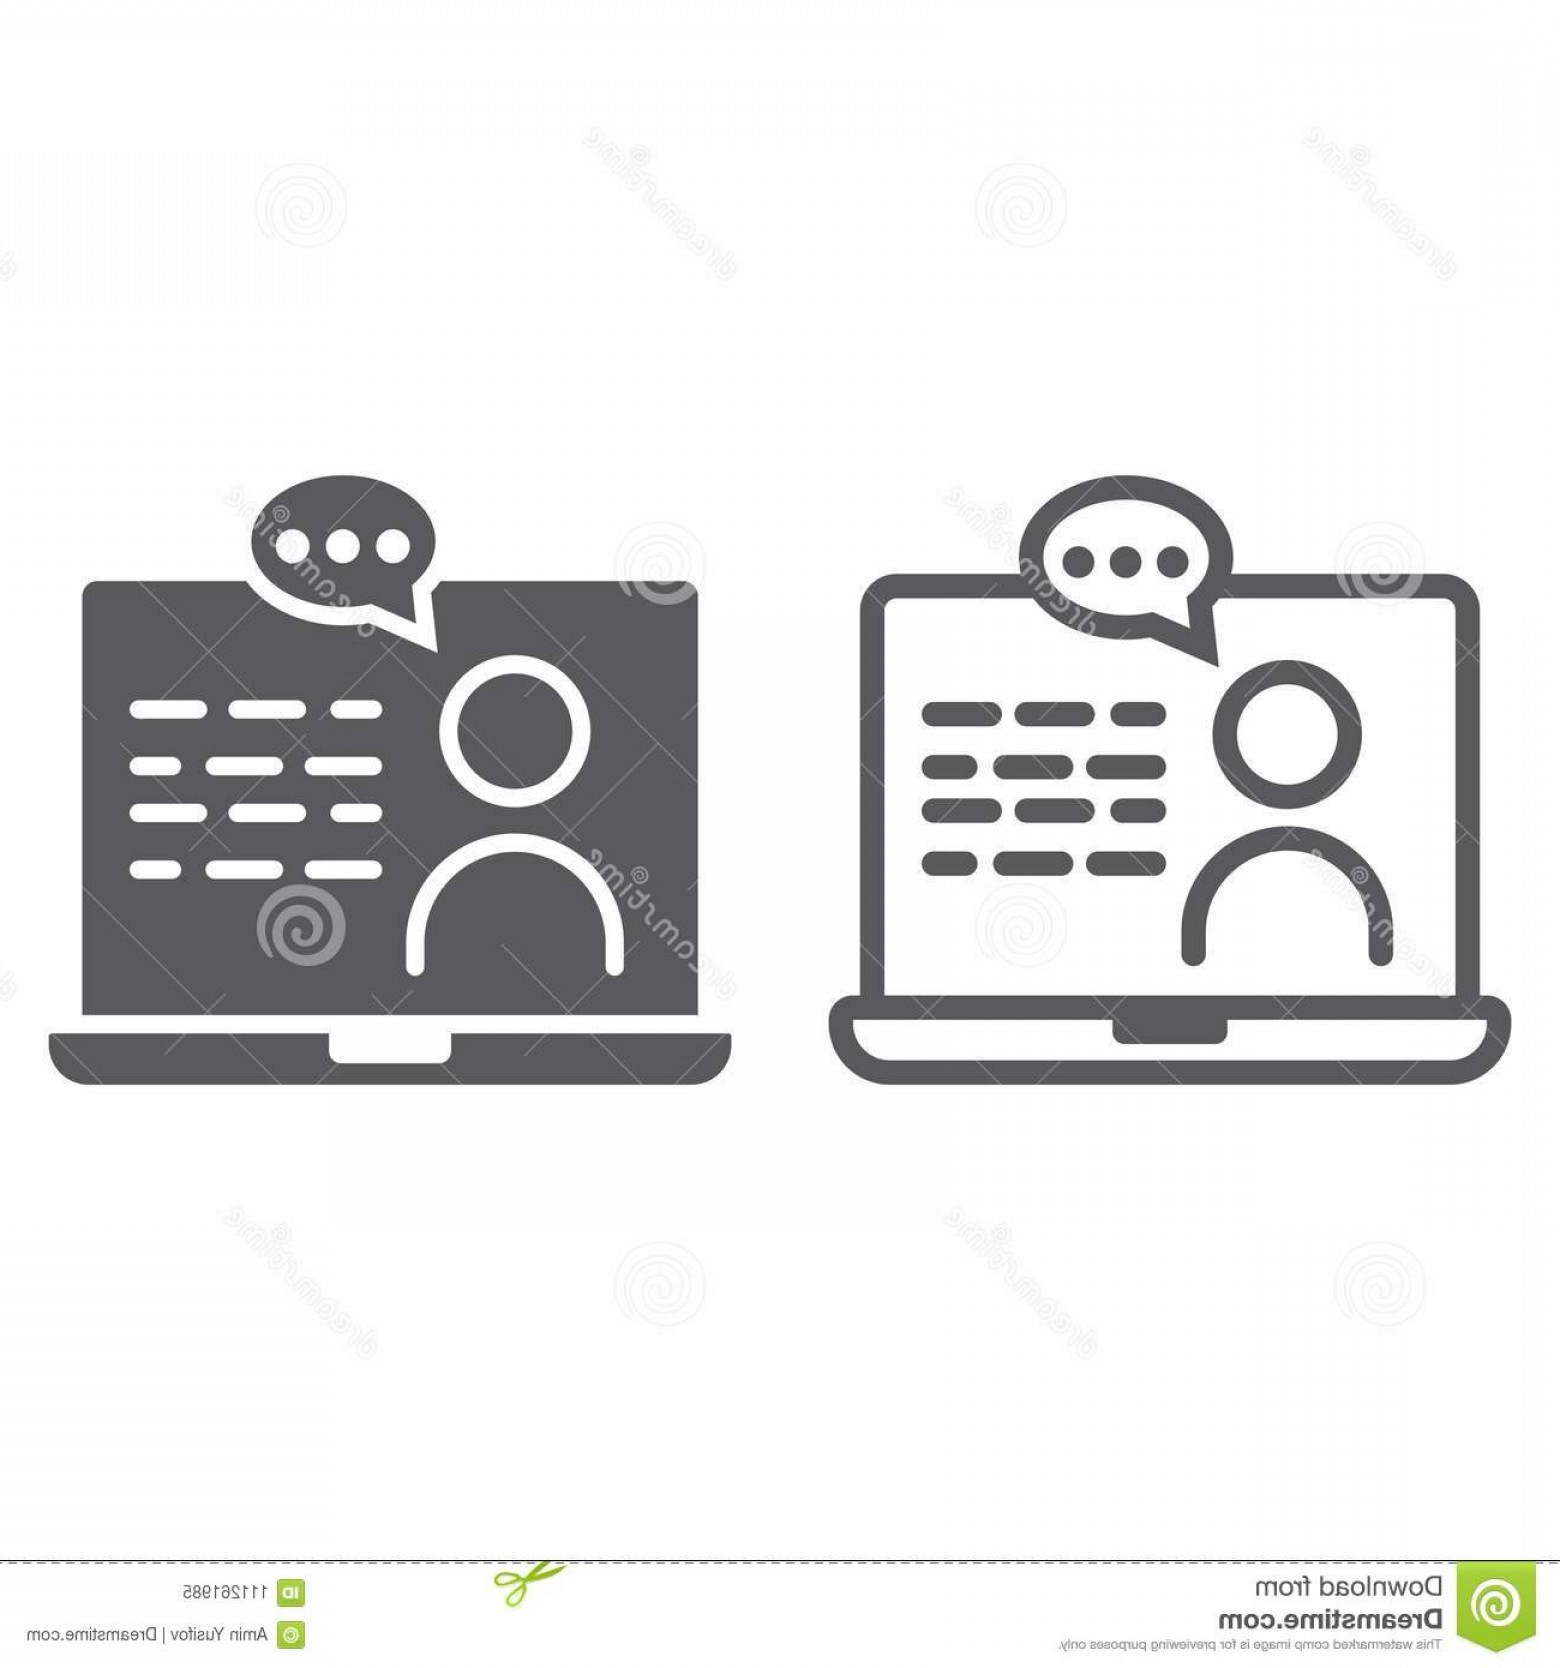 Support Vector Graphics: Online Consulting Line Glyph Icon Online Consulting Line Glyph Icon E Learning Education Support Sign Vector Graphics Image